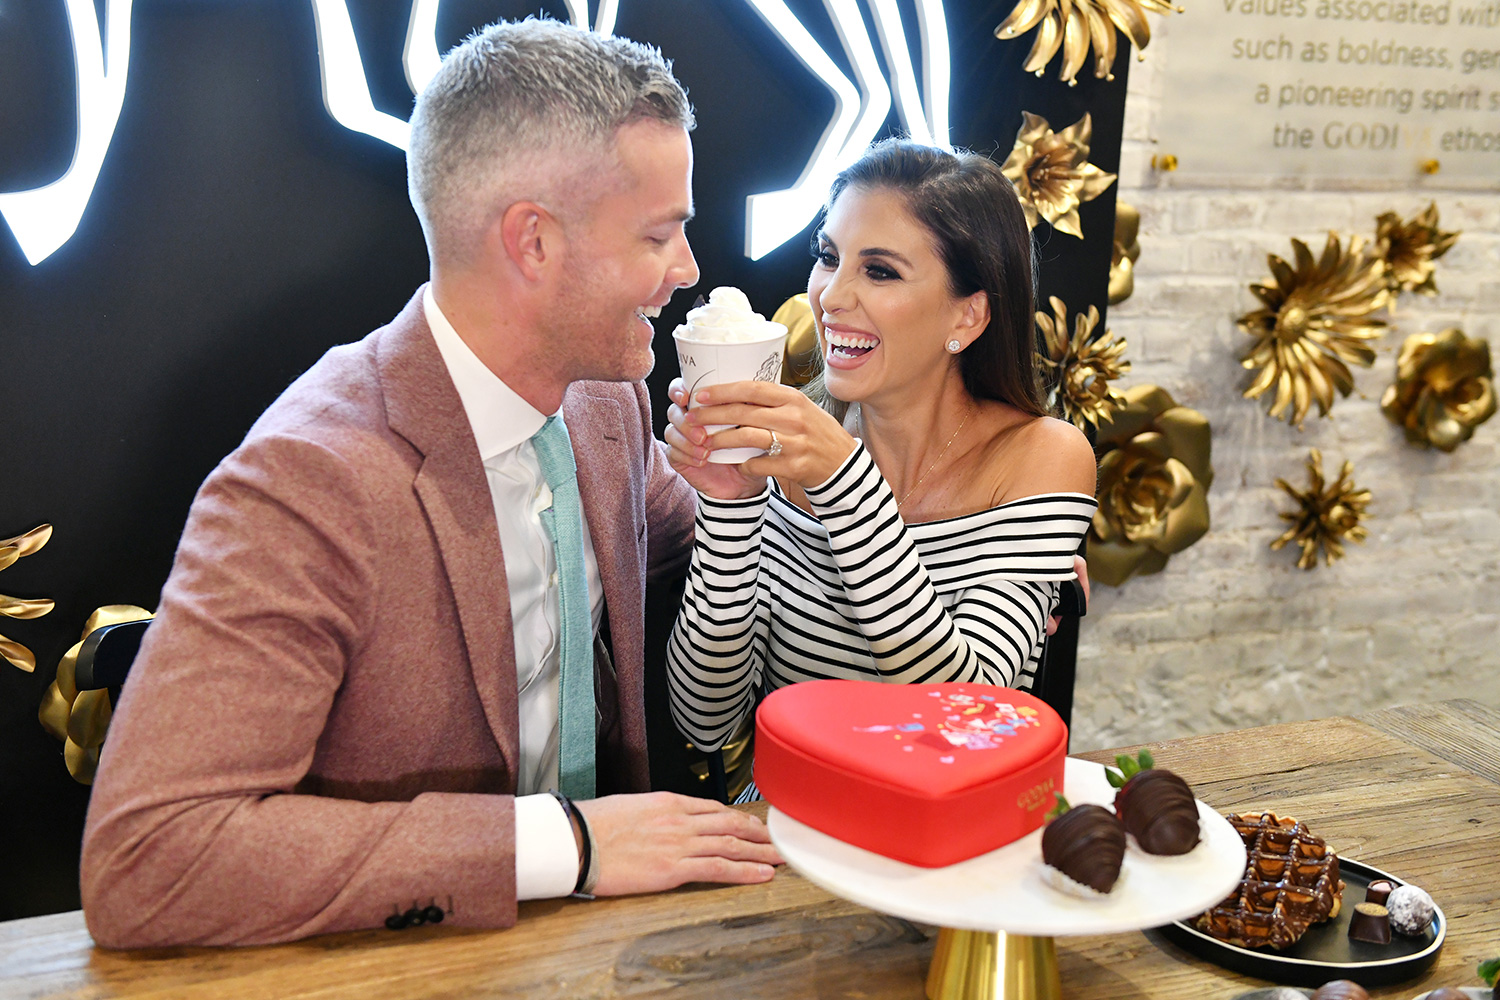 Million Dollar Listing New York stars, Ryan Serhant and Emilia Bechrakis Serhant, shop for Valentines Day gifts at the GODIVA café located in NYCs Flatiron district on February 10, 2020 in New York City